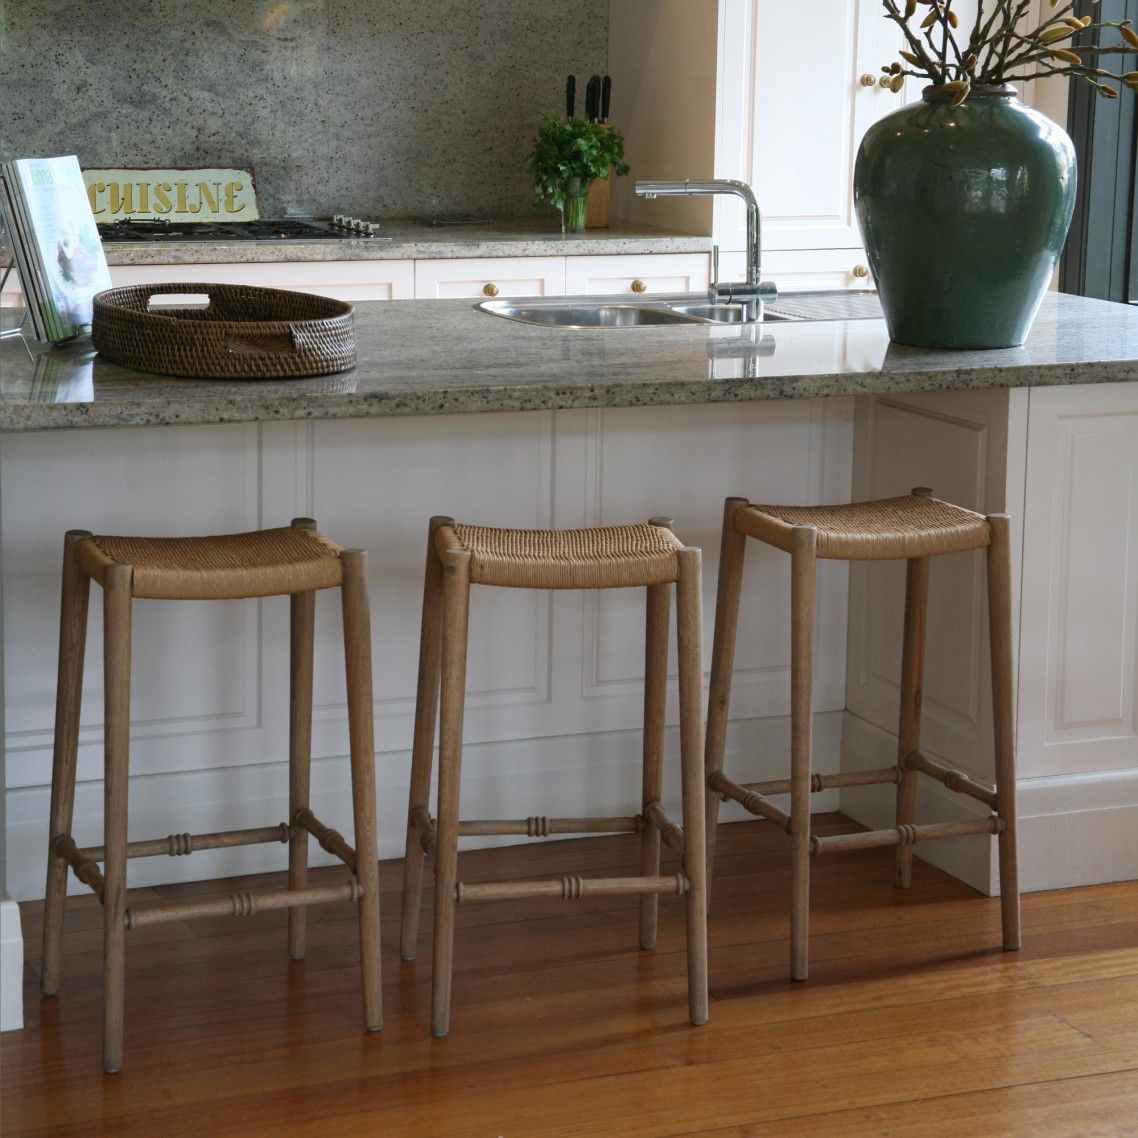 Kitchen Bar Stools On Sale Natural Used Wooden Bar Stool With Bamboo Woven Seat Without